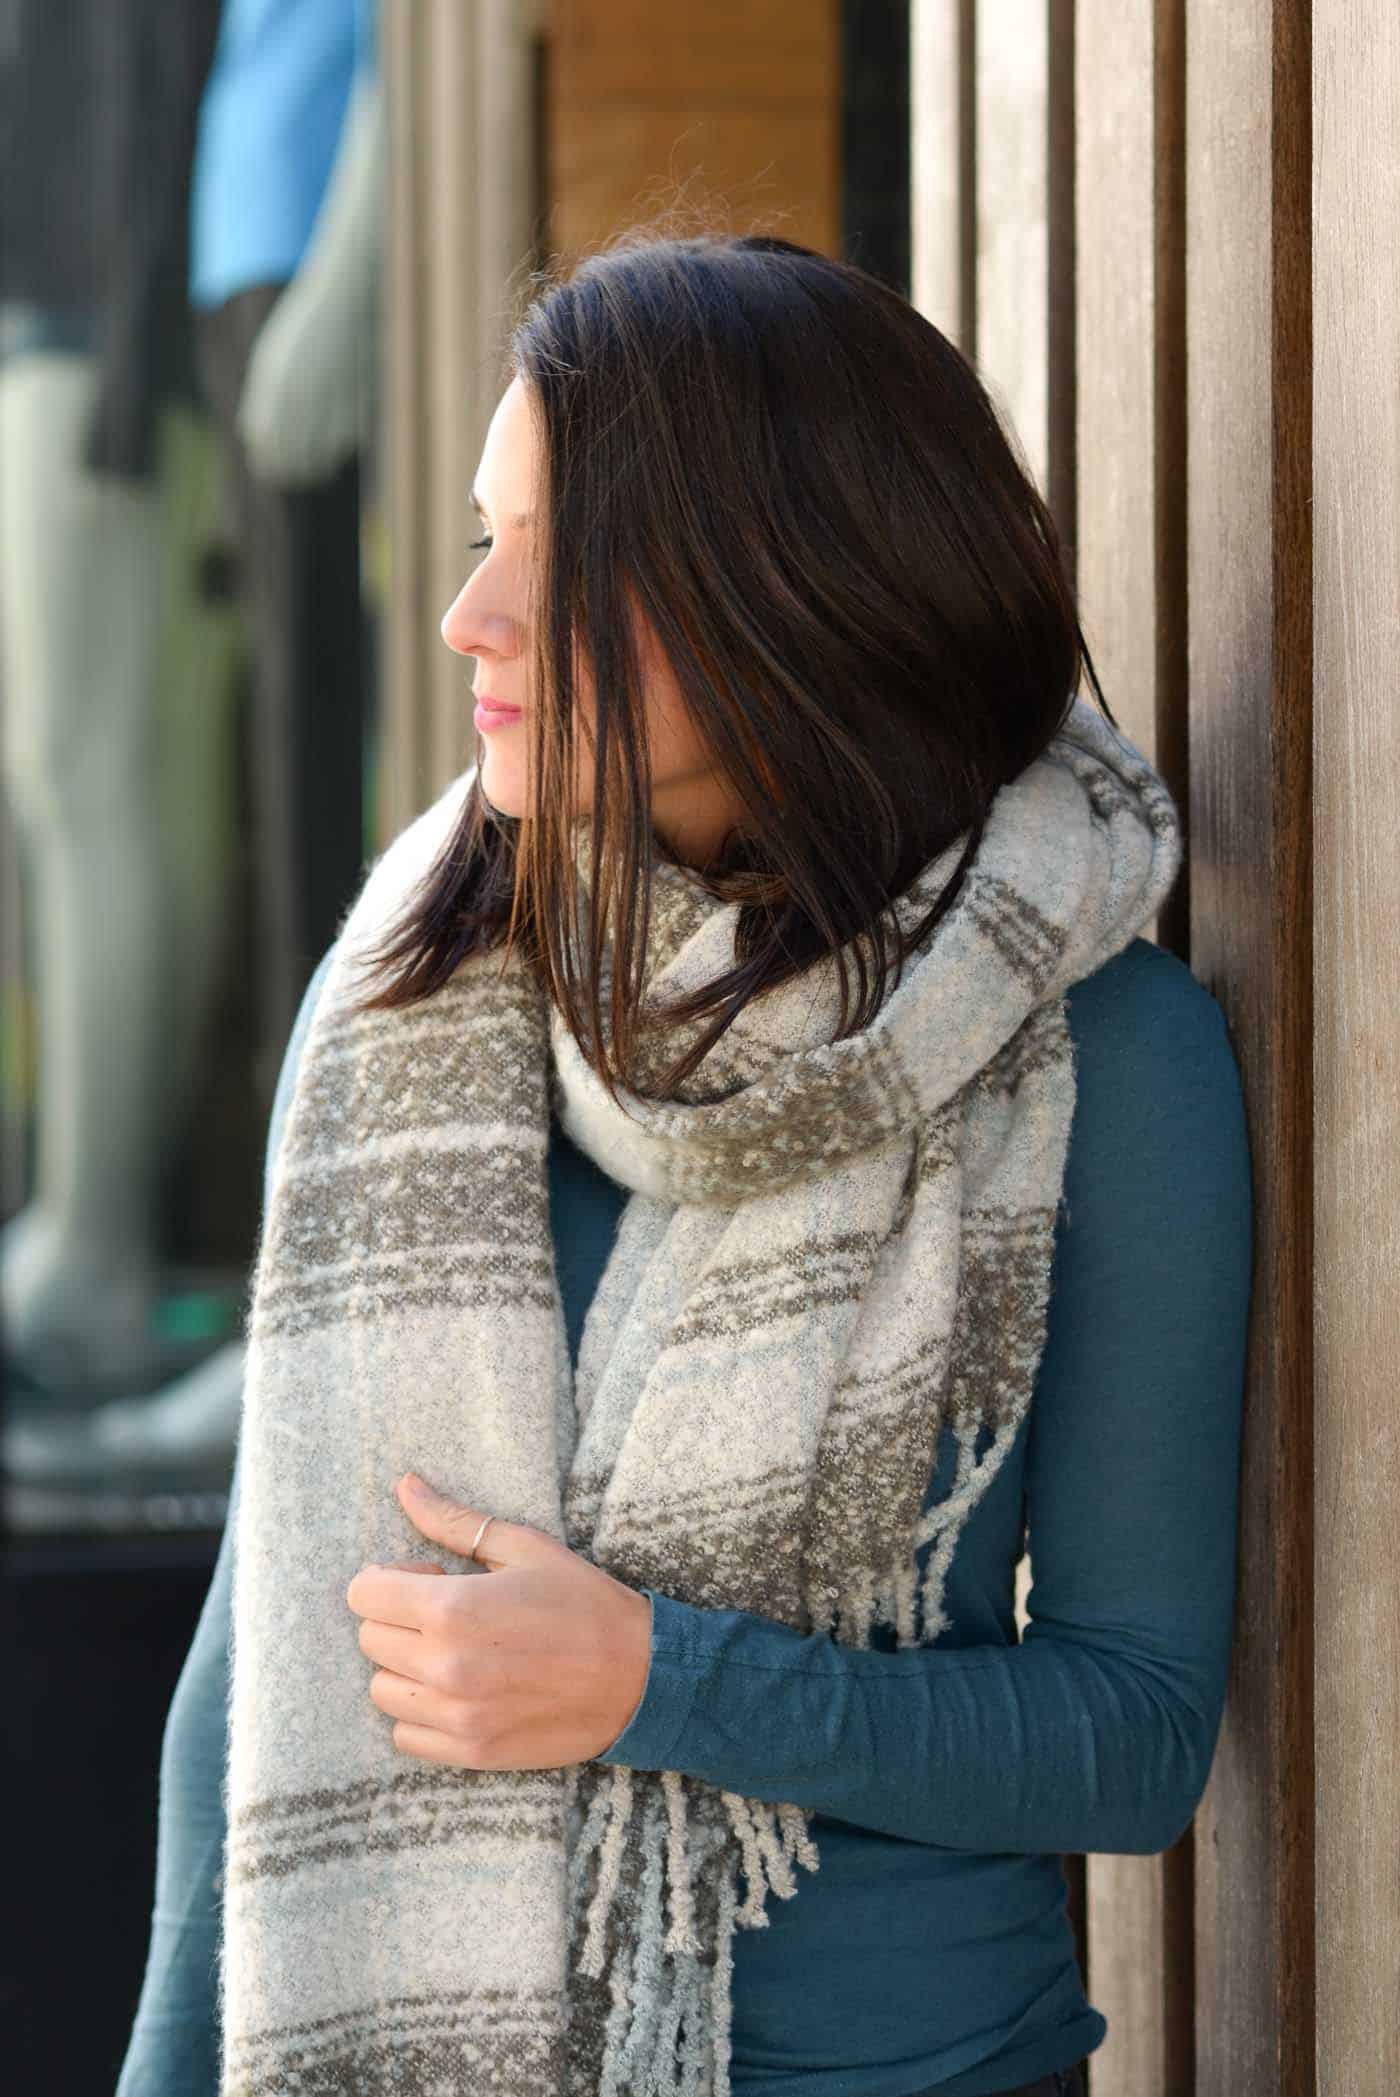 bundled up outfit for fall, blanket scarf outfit - My Style Vita @mystylevita